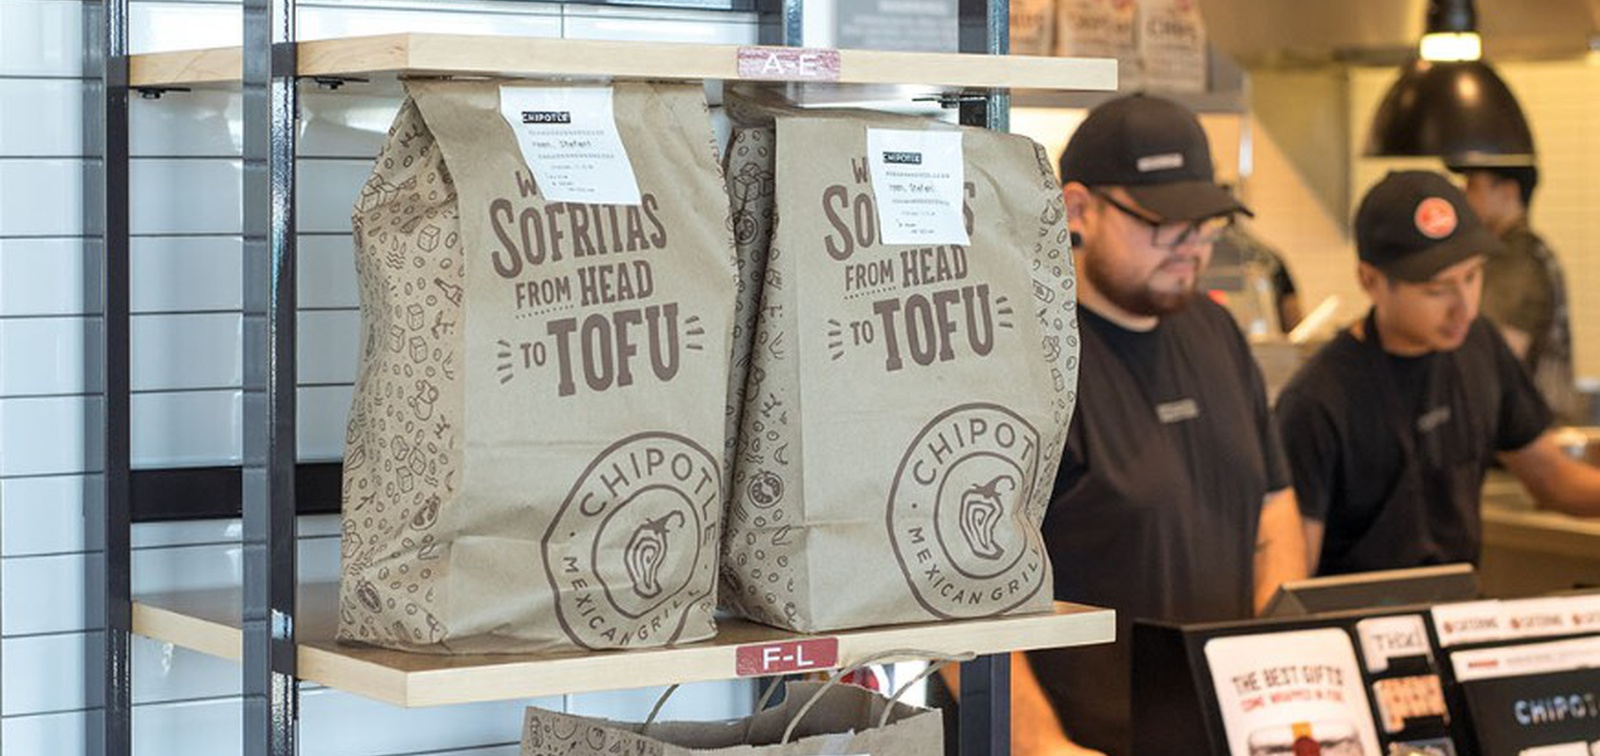 Chipotle could exceed $2.5B in digital sales in 2020